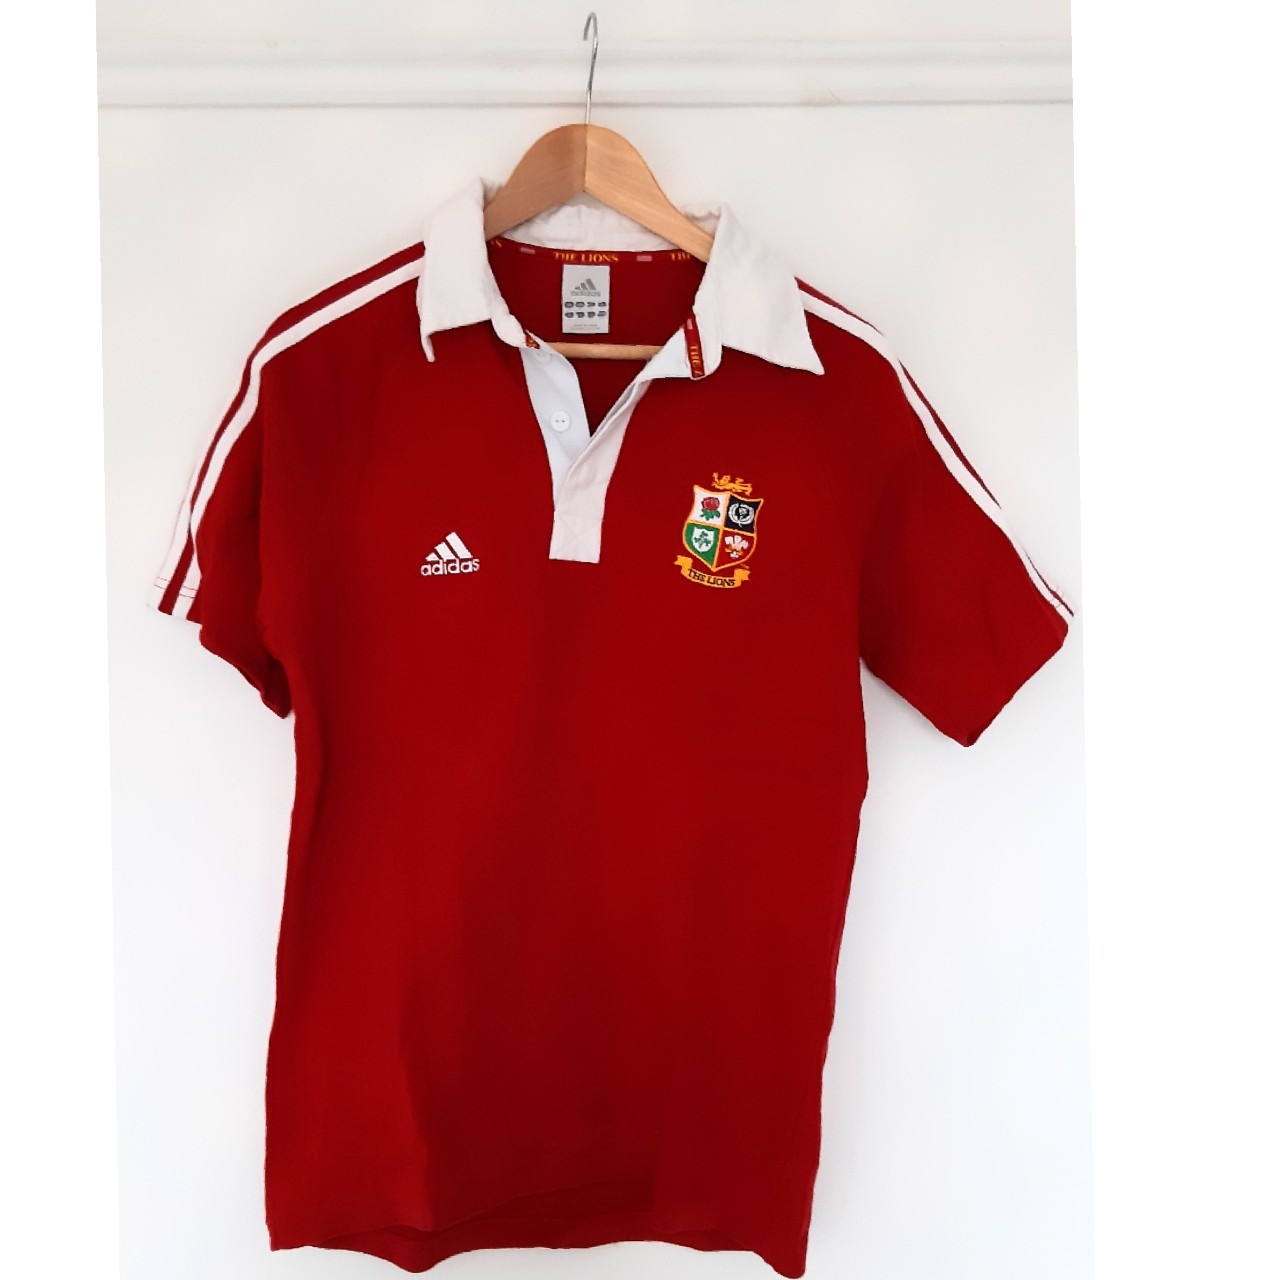 size 40 fbb53 a47db Adidas rugby shirt, British and Irish Lions. Made by... - Depop